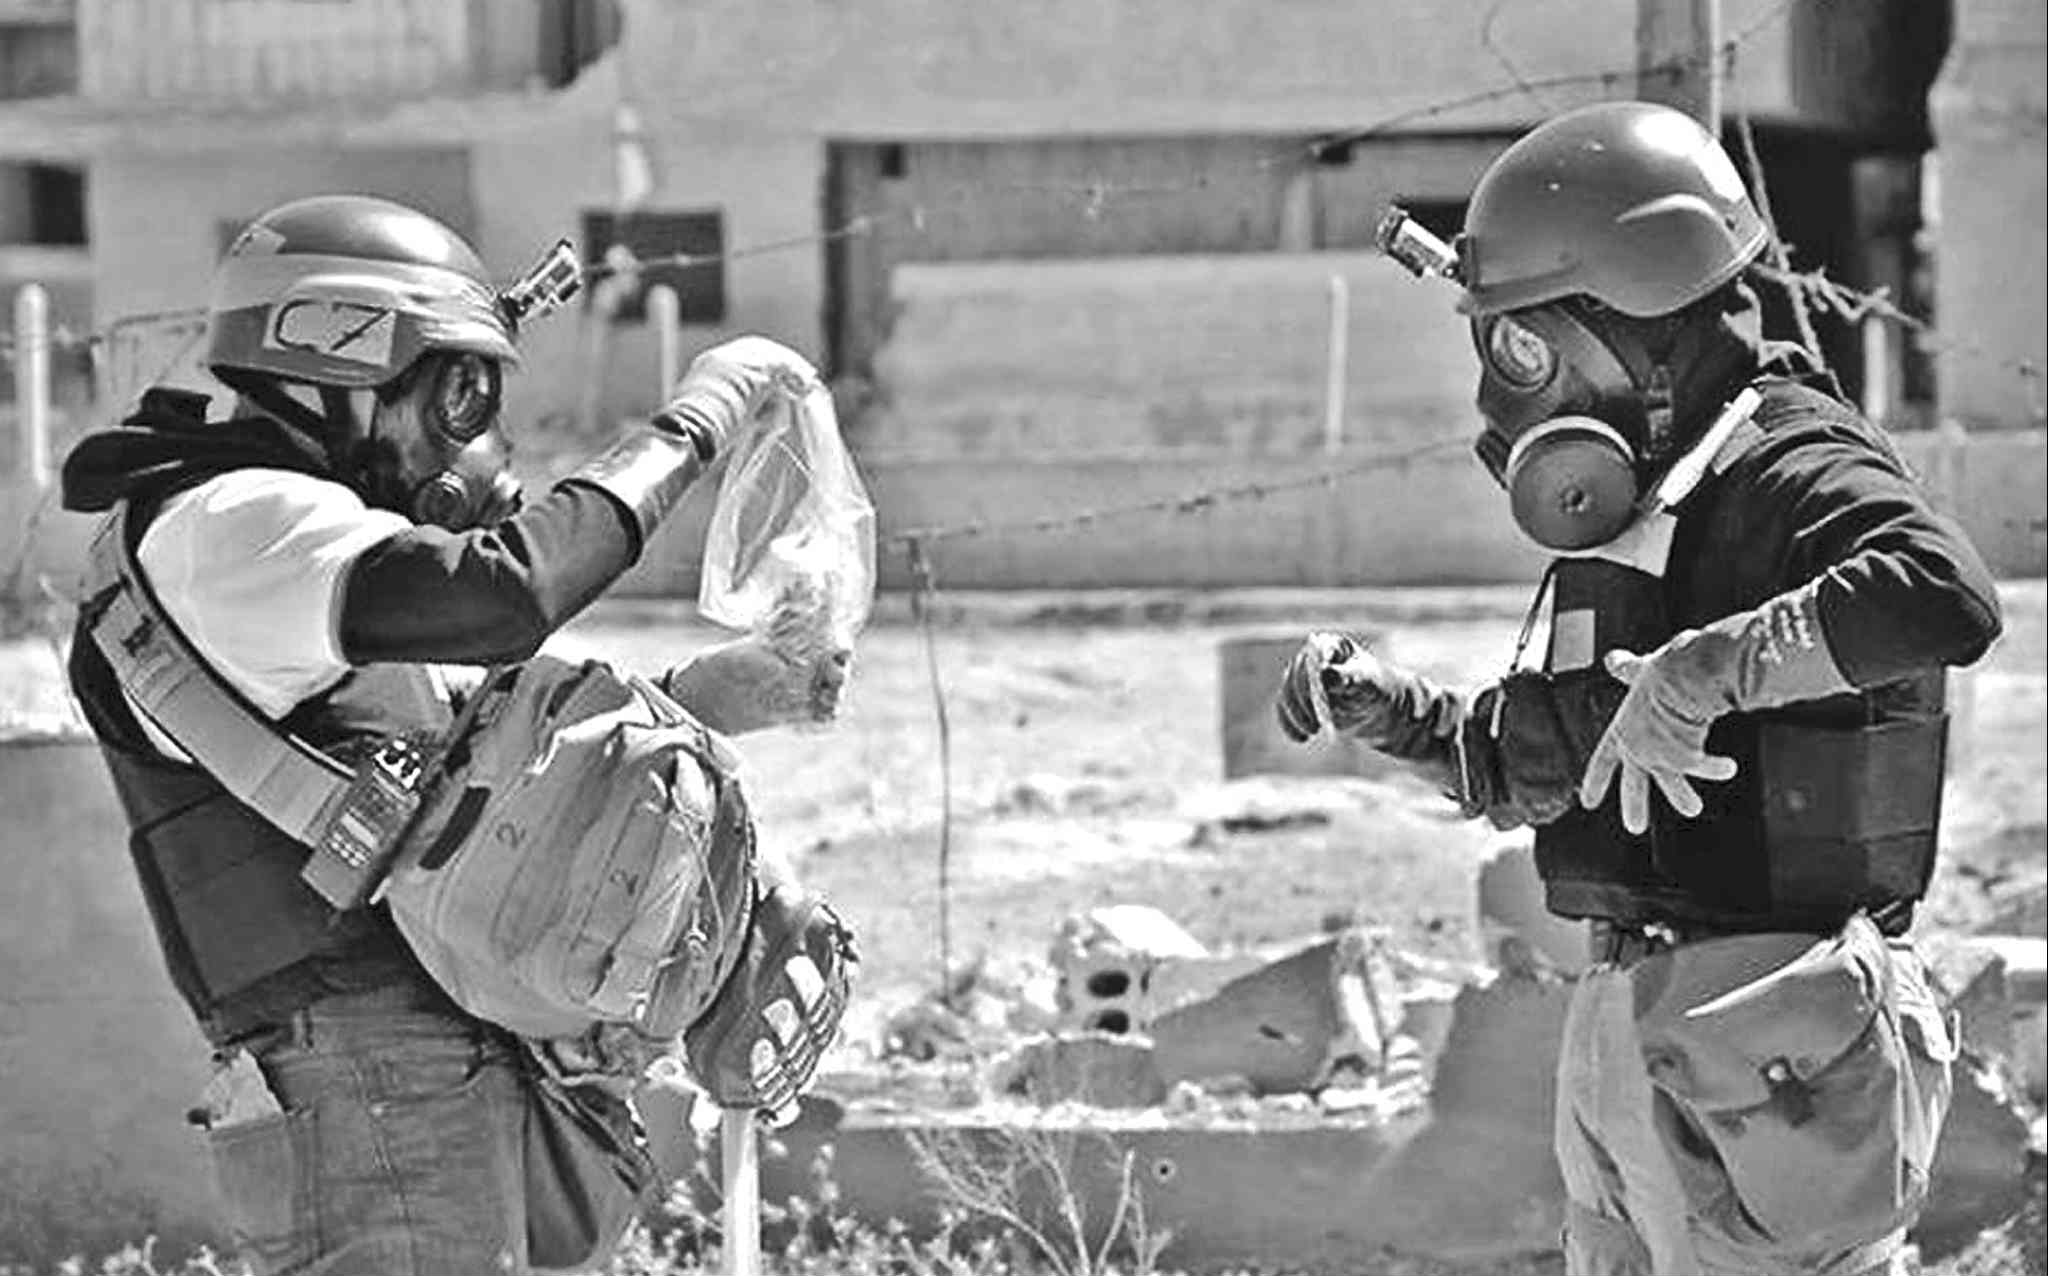 Members of a chemical-weapons investigation team take samples from the site of a chemical-weapons attack in Syria.